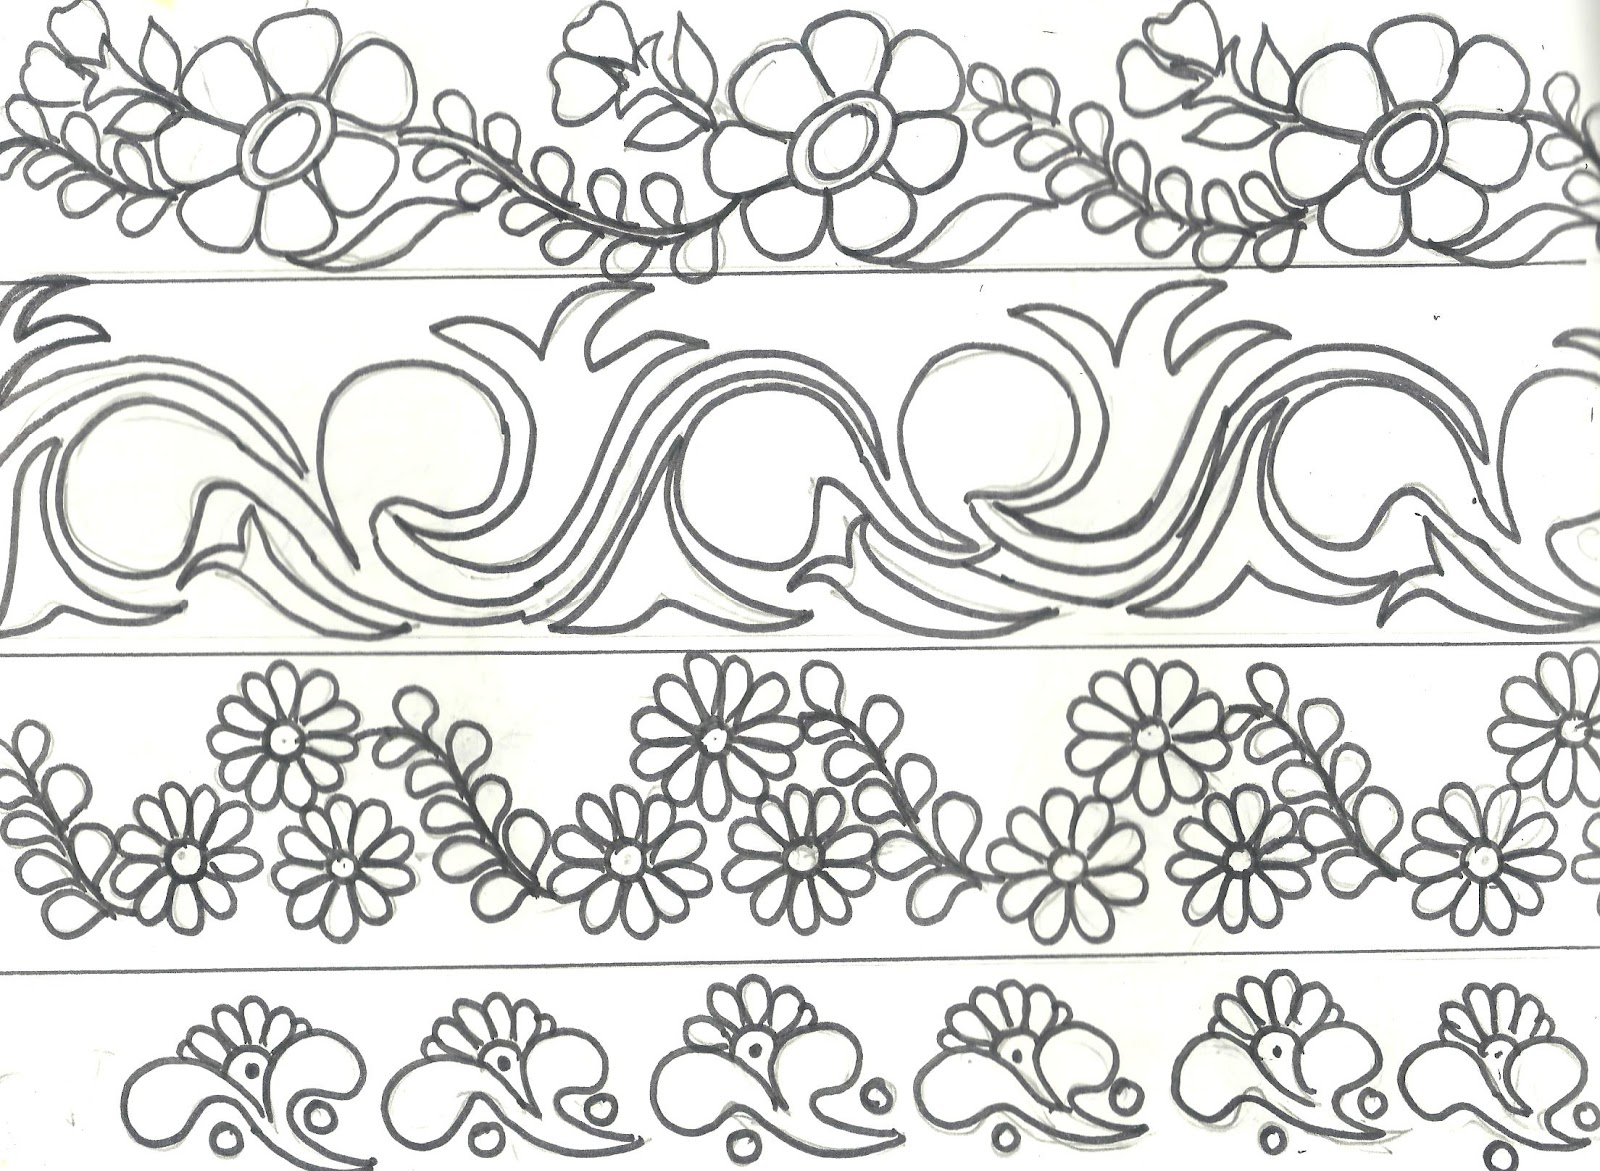 Mehndi Drawing at GetDrawings.com | Free for personal use Mehndi ...